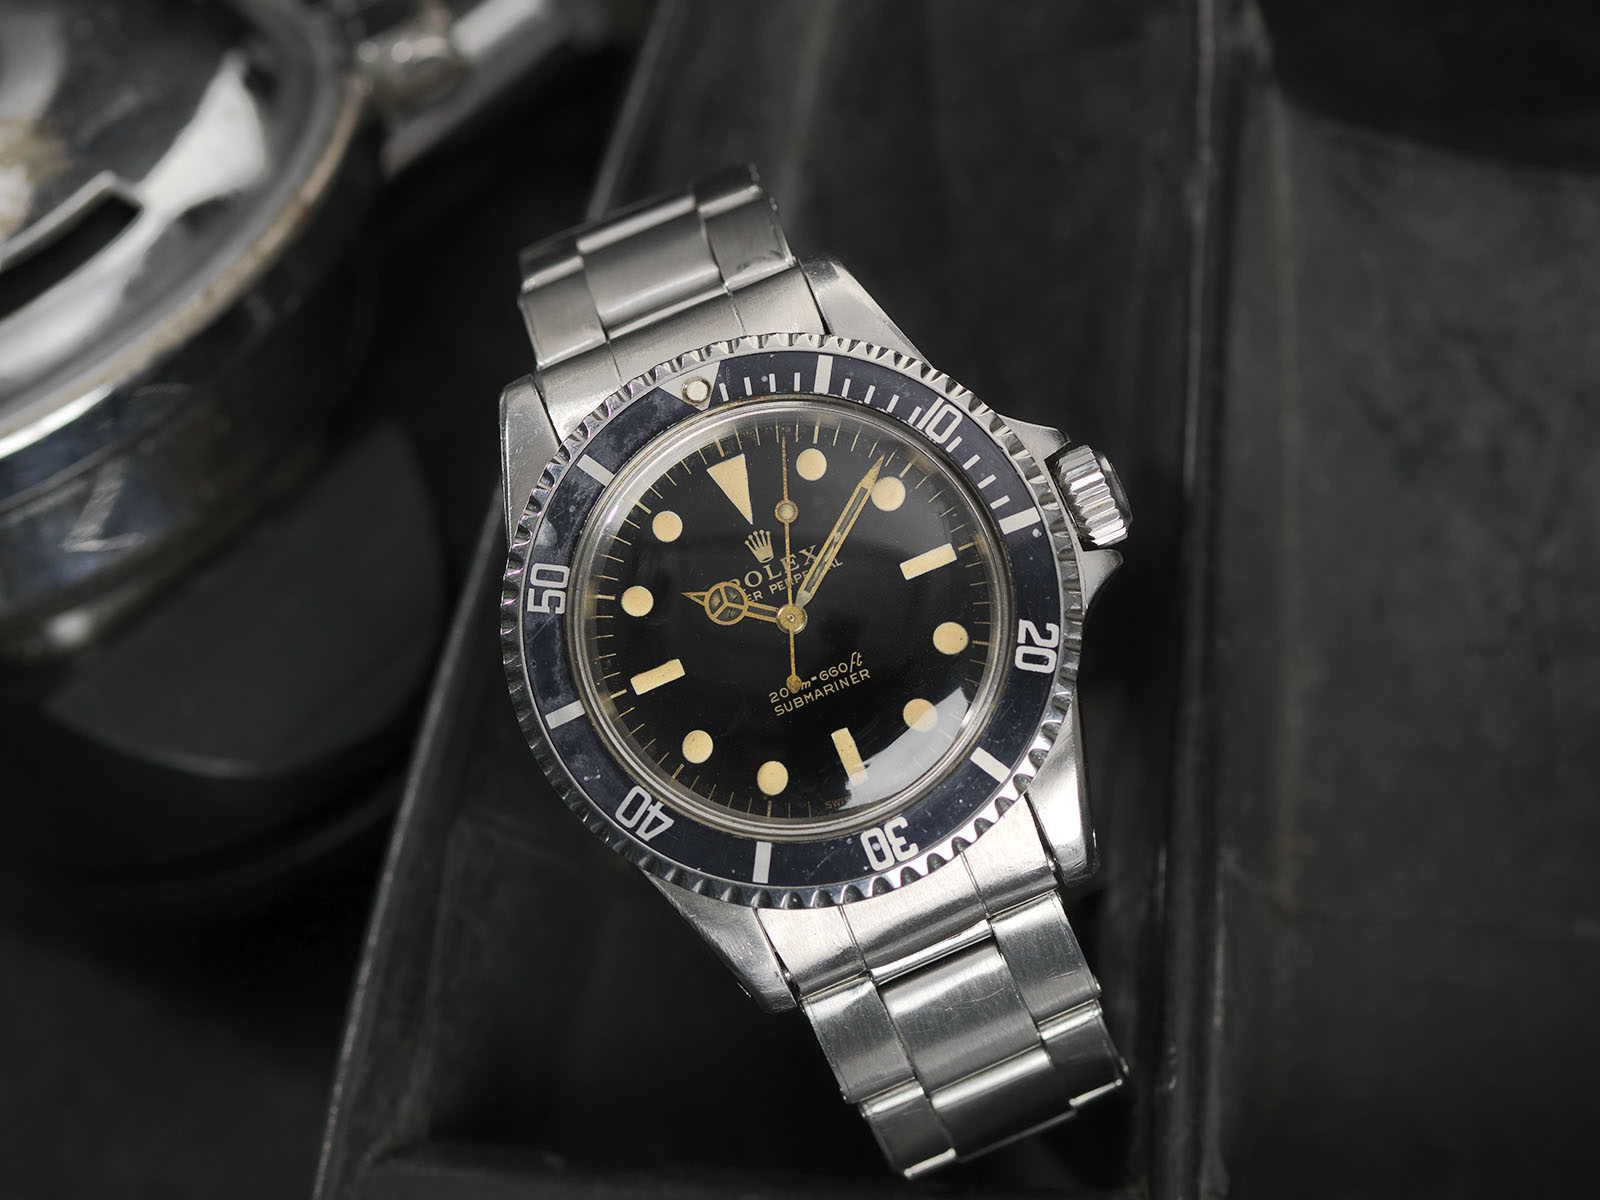 B&S W-299 Rolex 5513 Gilt Article 24